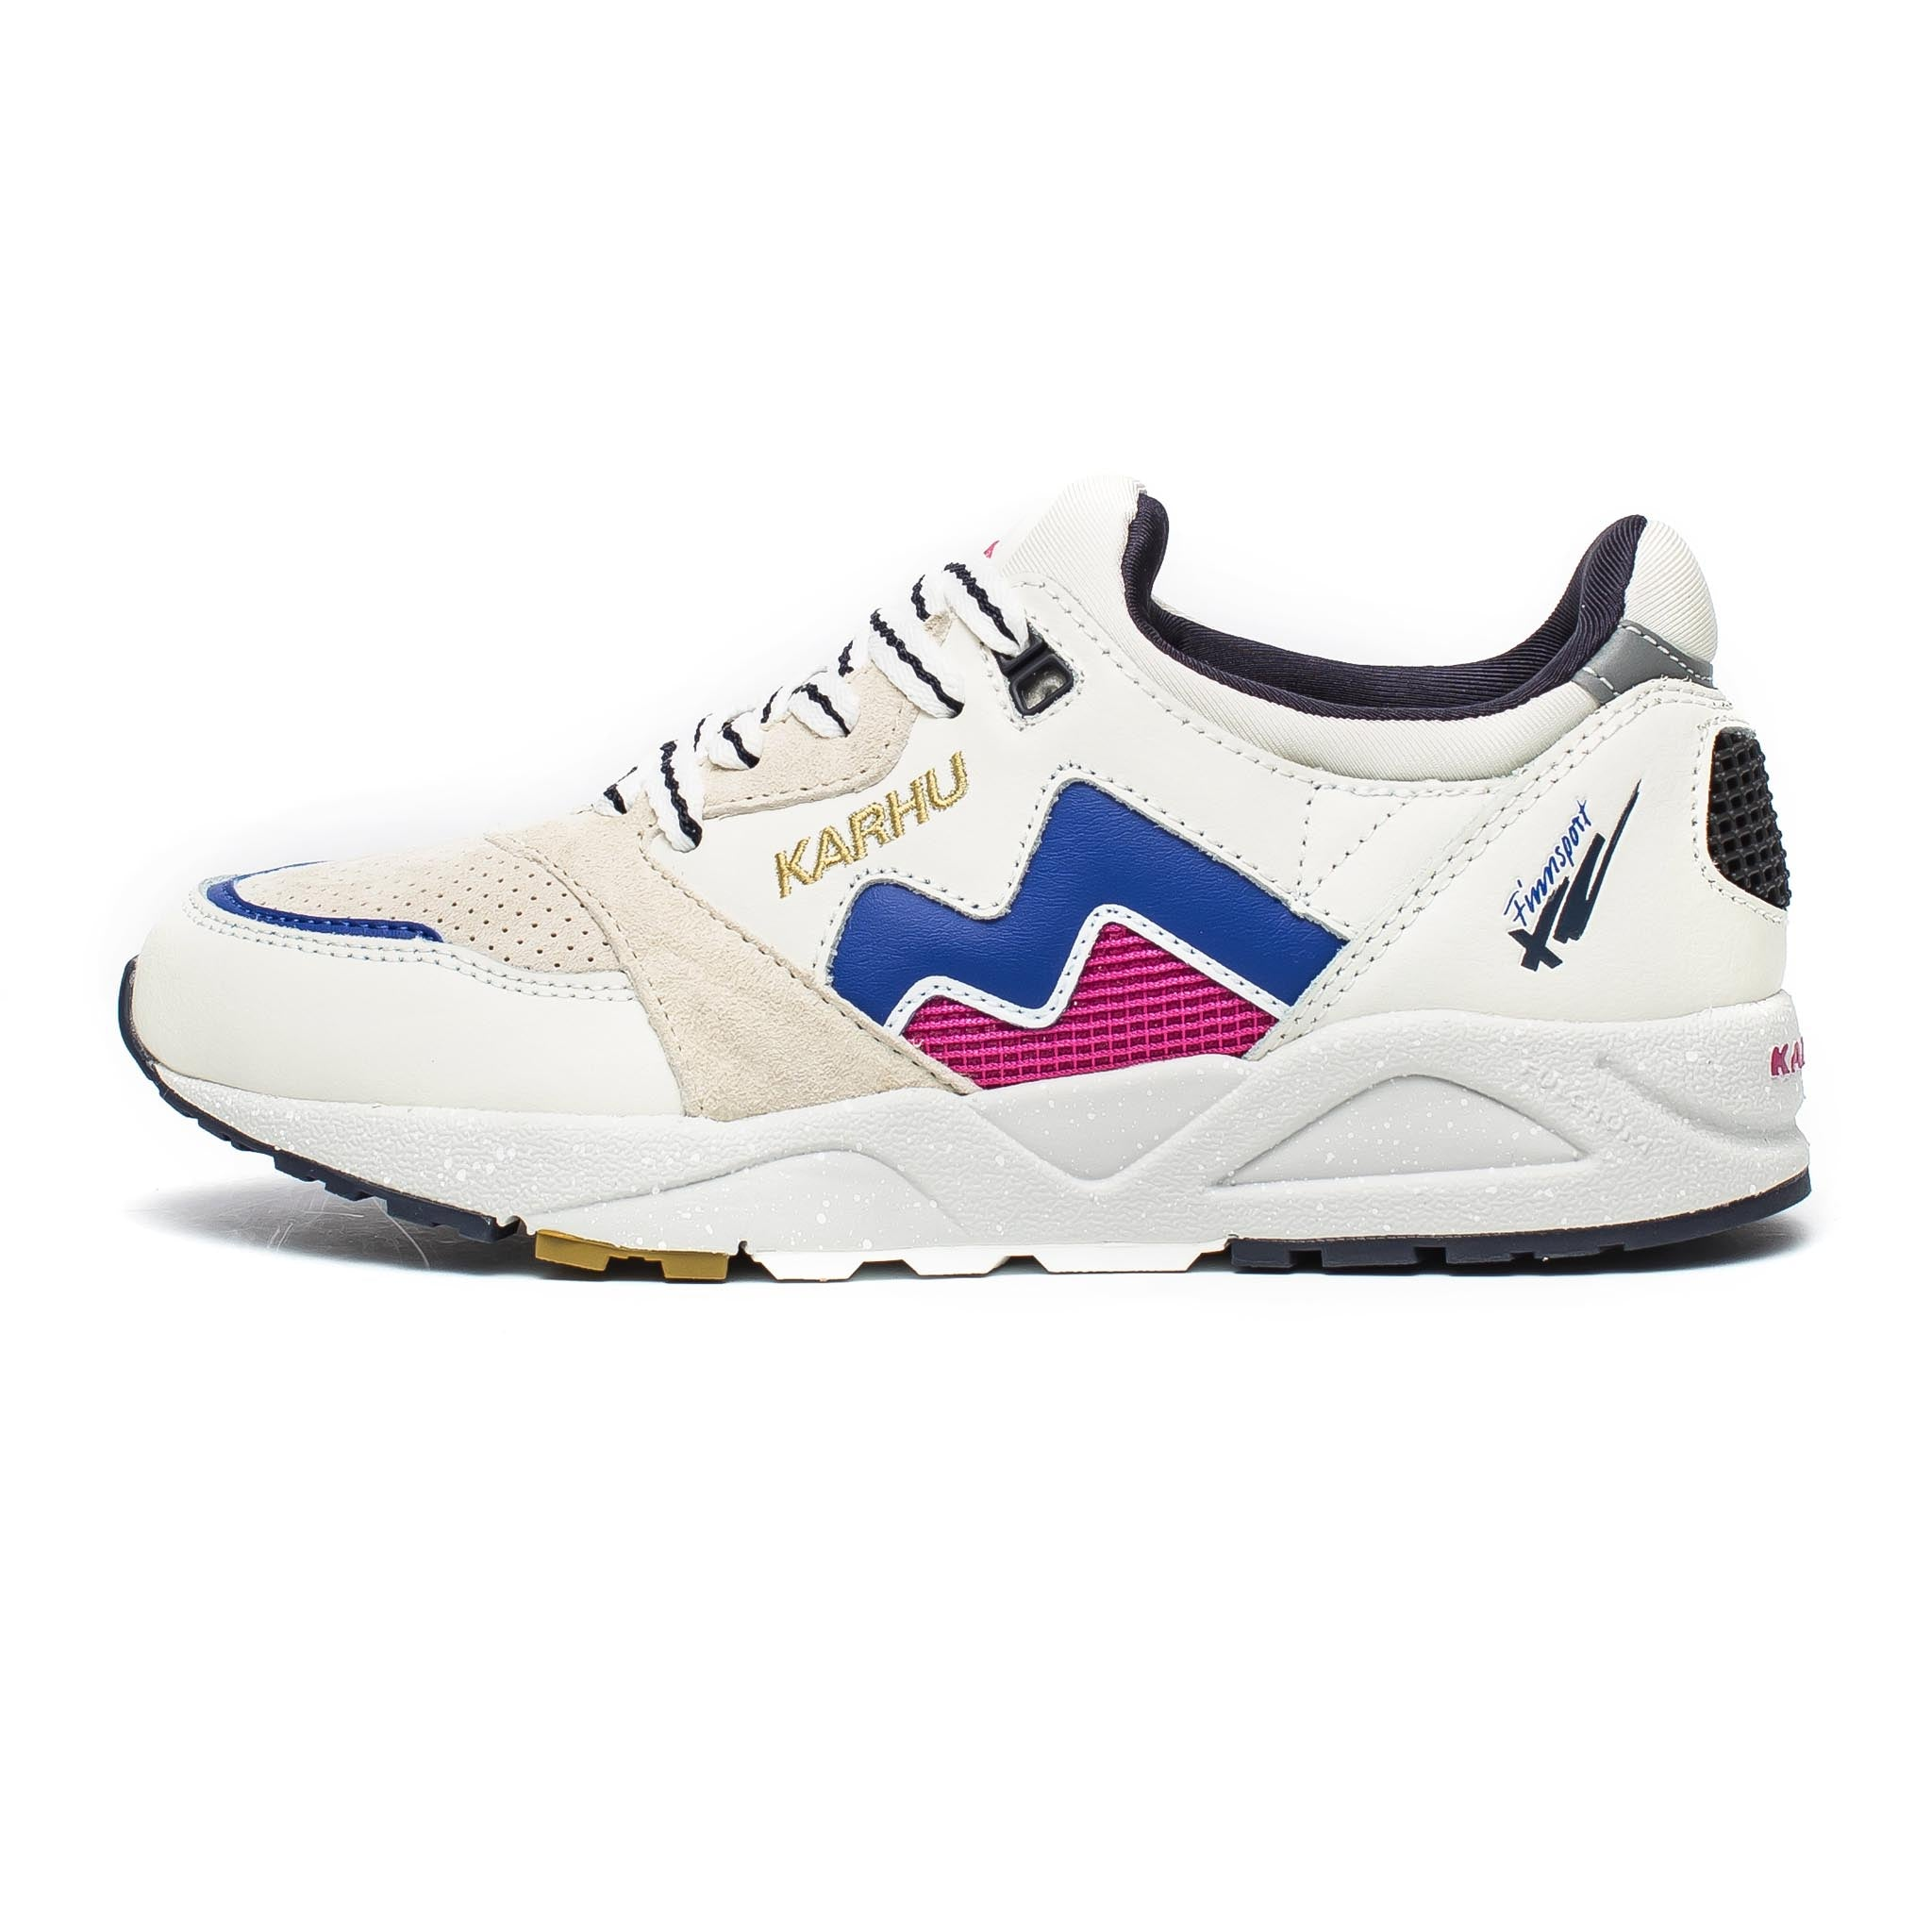 Karhu Aria 95 'Hockey Pack' Lily White/Surf the Web